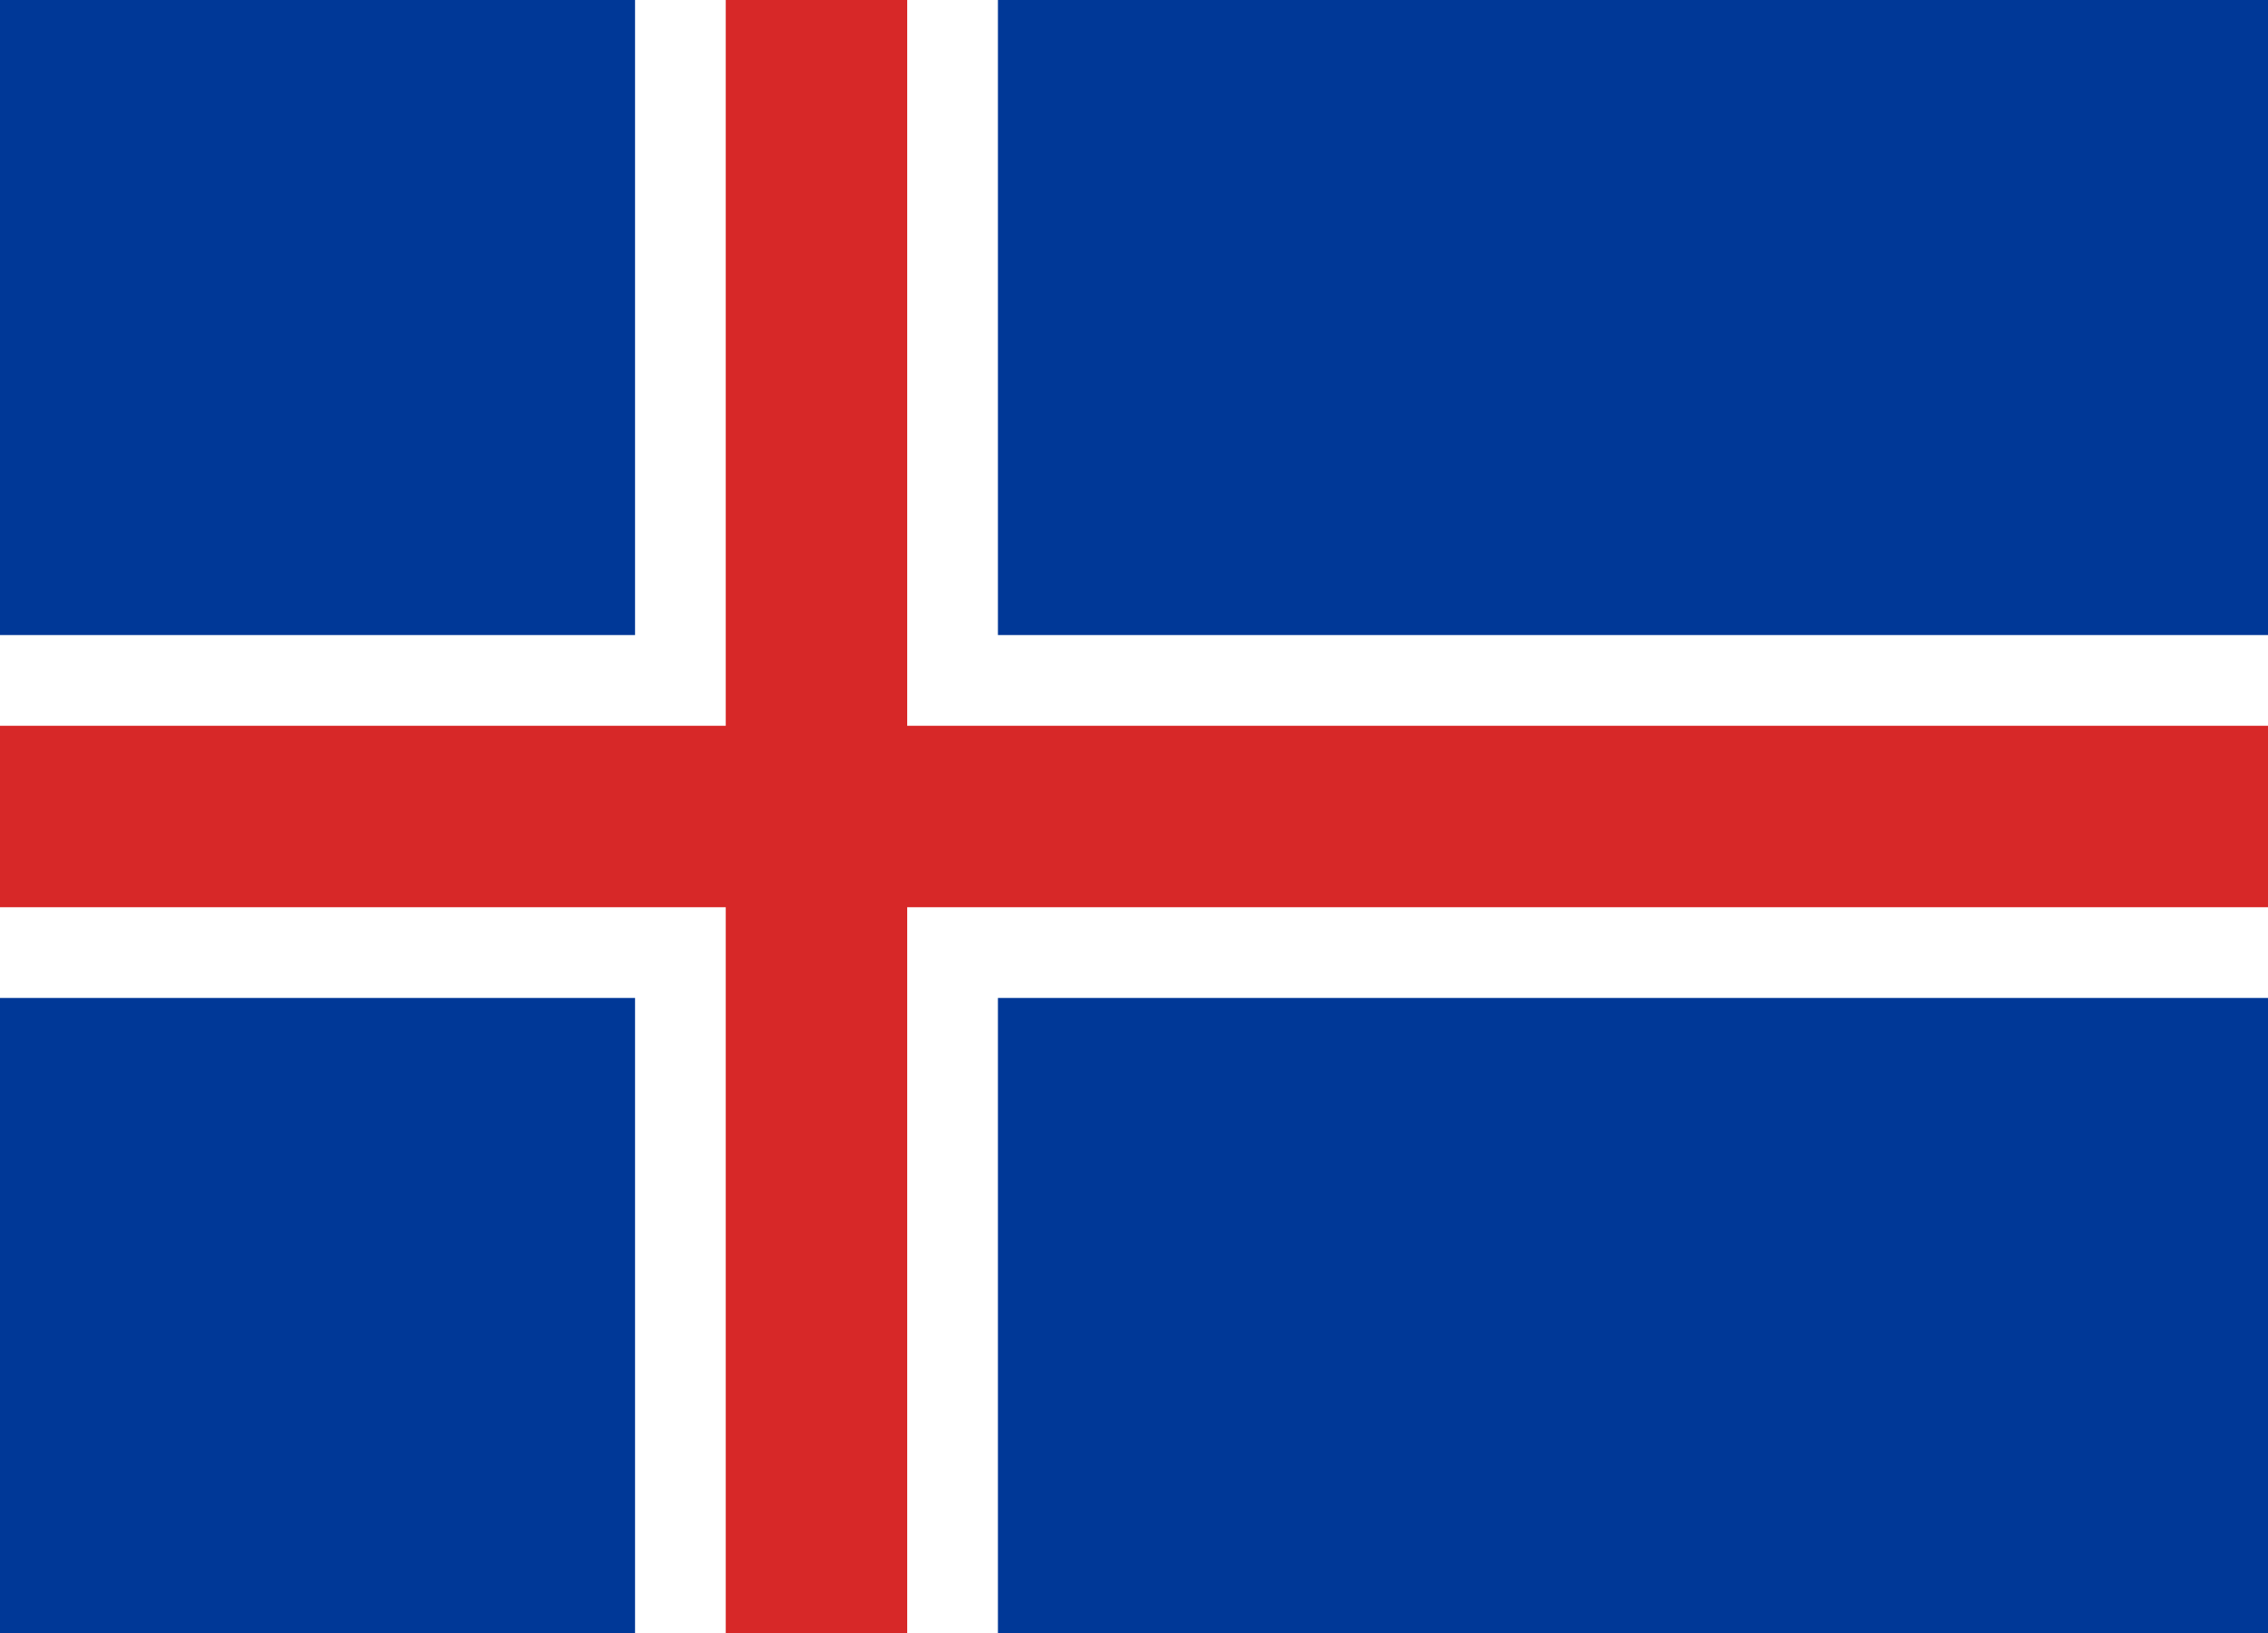 Iceland Flags Of Countries Iceland Flag Iceland Iceland Facts